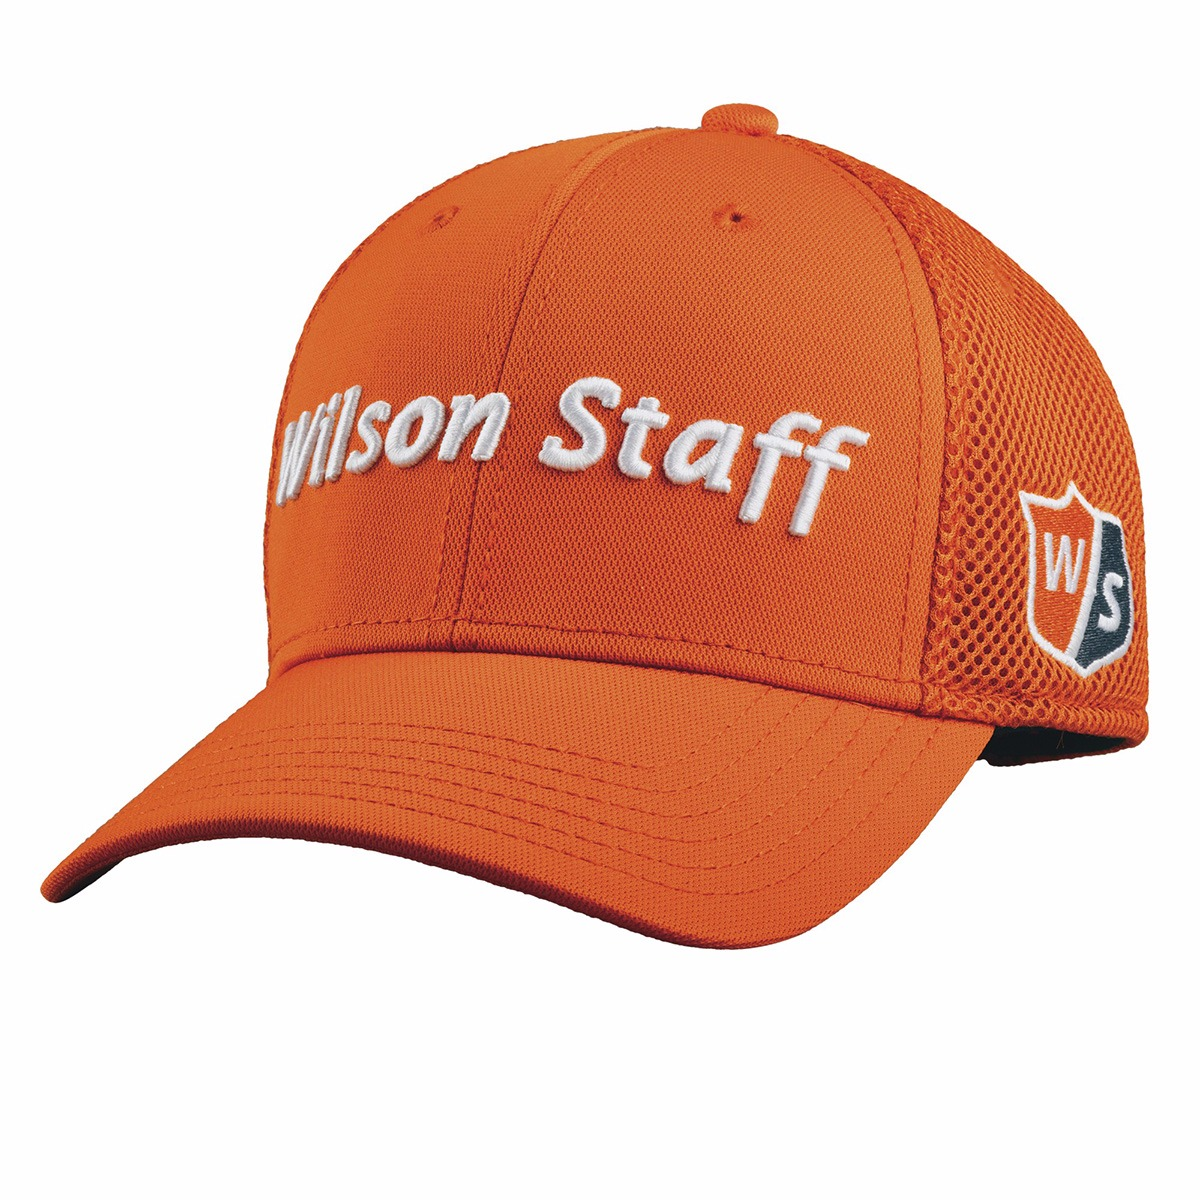 Details about Wilson Staff Tour Mesh Golf Hat Orange Adjustable - New 2018 00c7567dd04